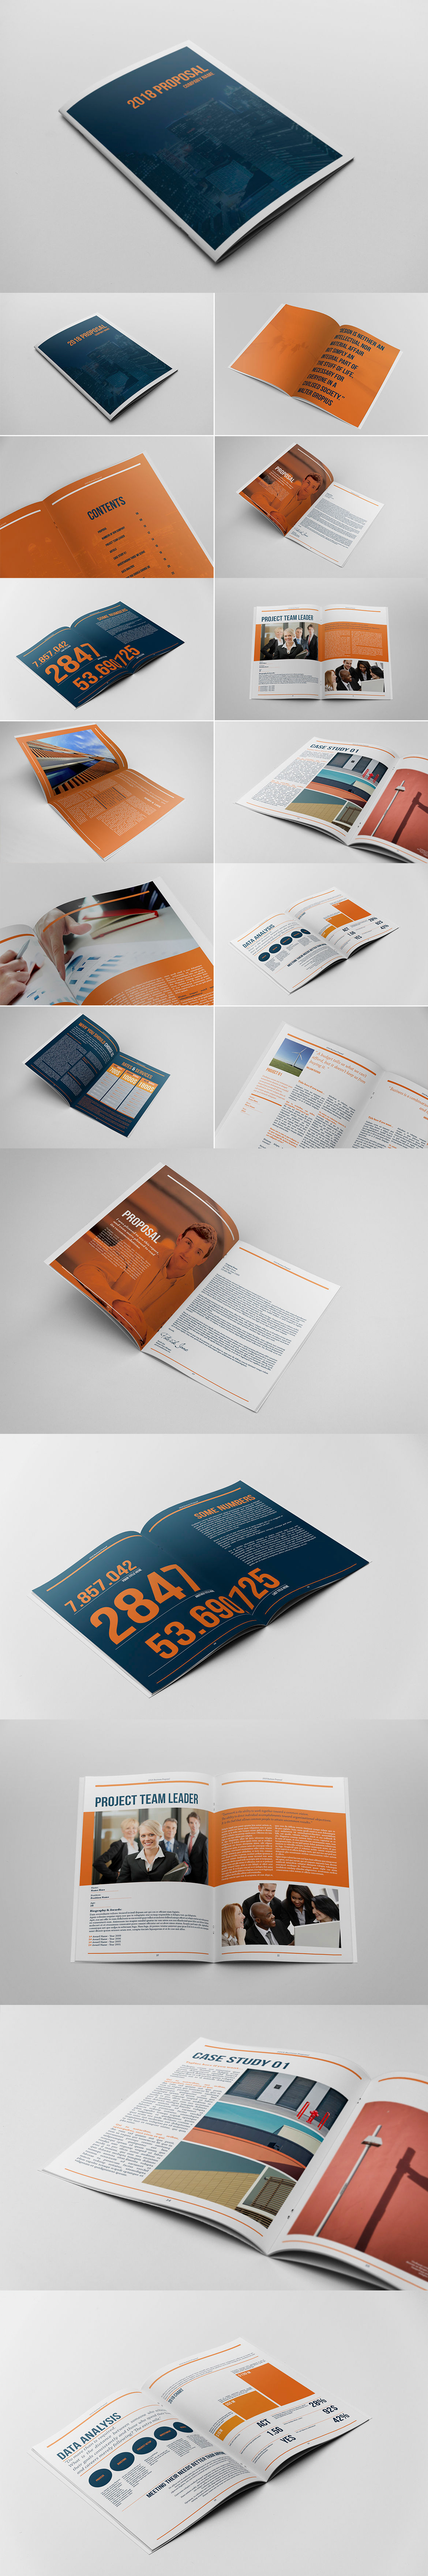 24 Pages Business Project Proposal Template InDesign